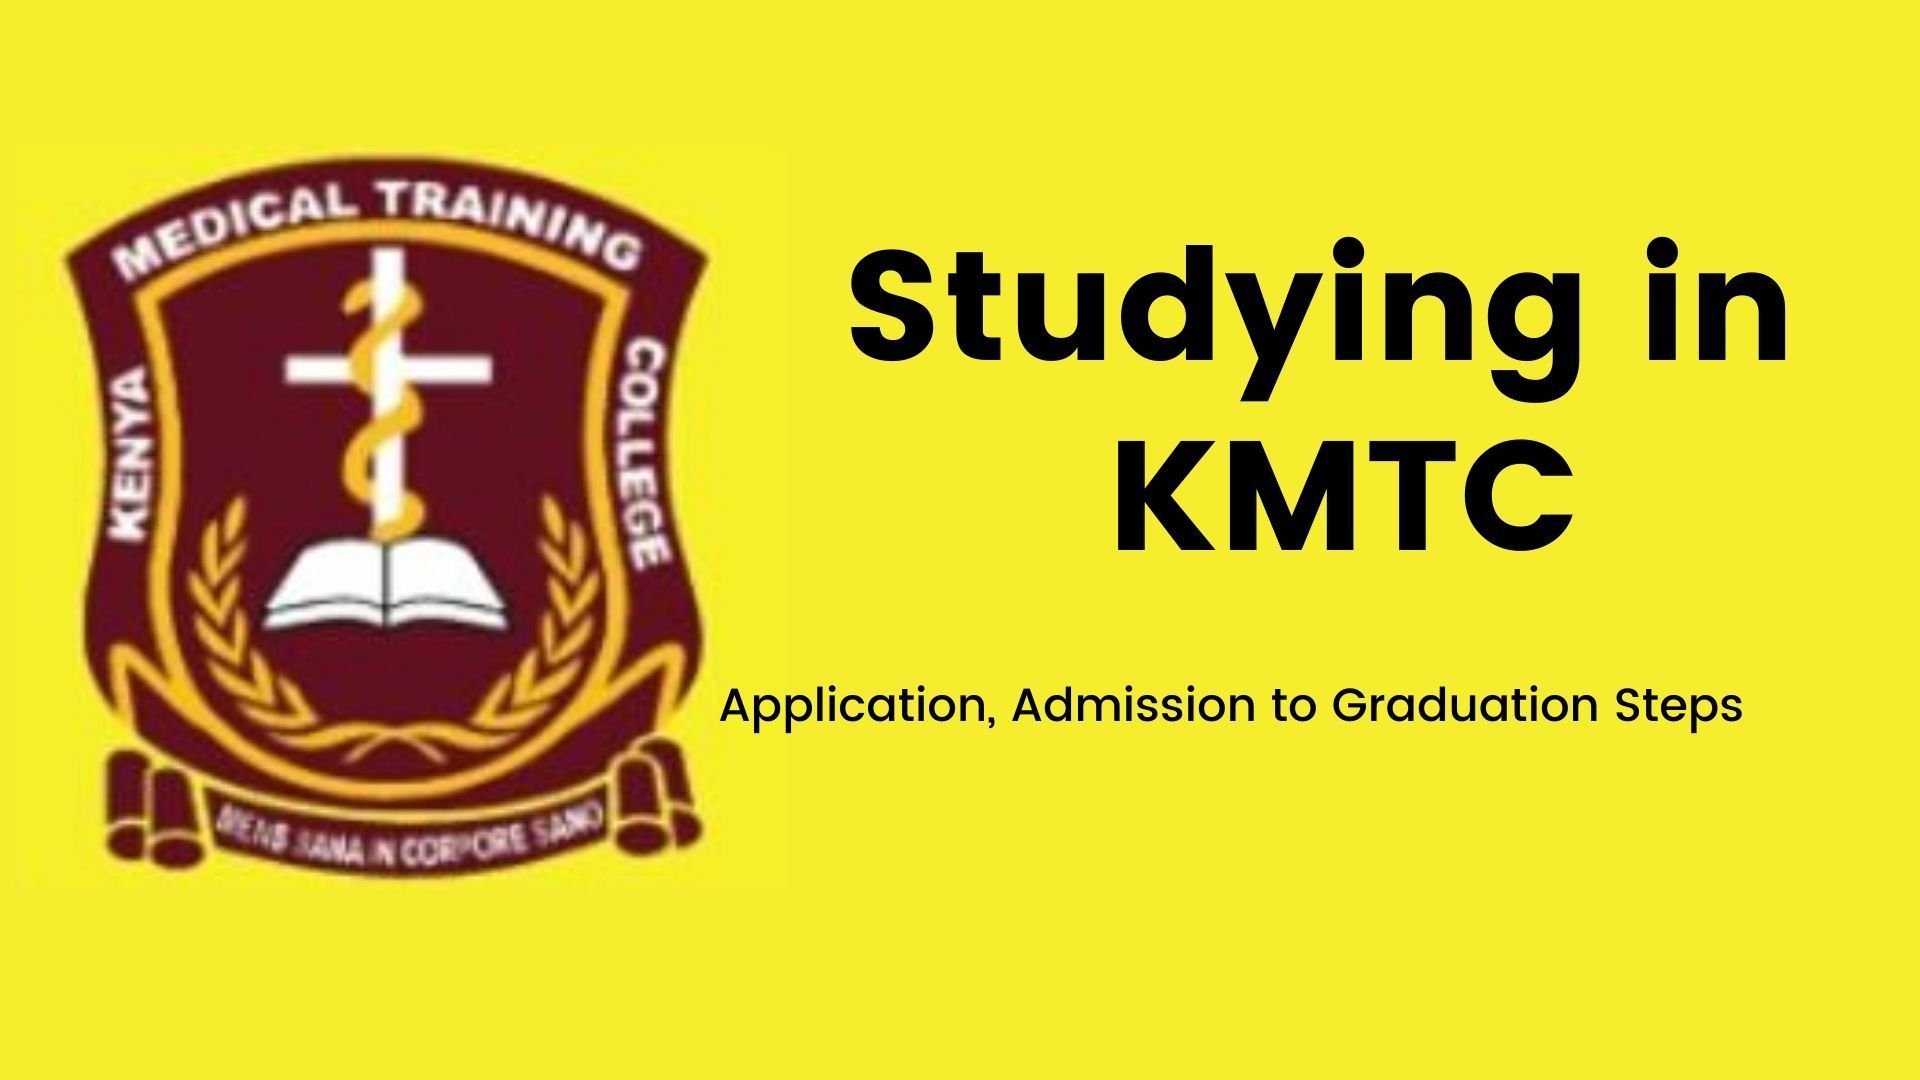 Studying in KMTC Application, Admission to Graduation